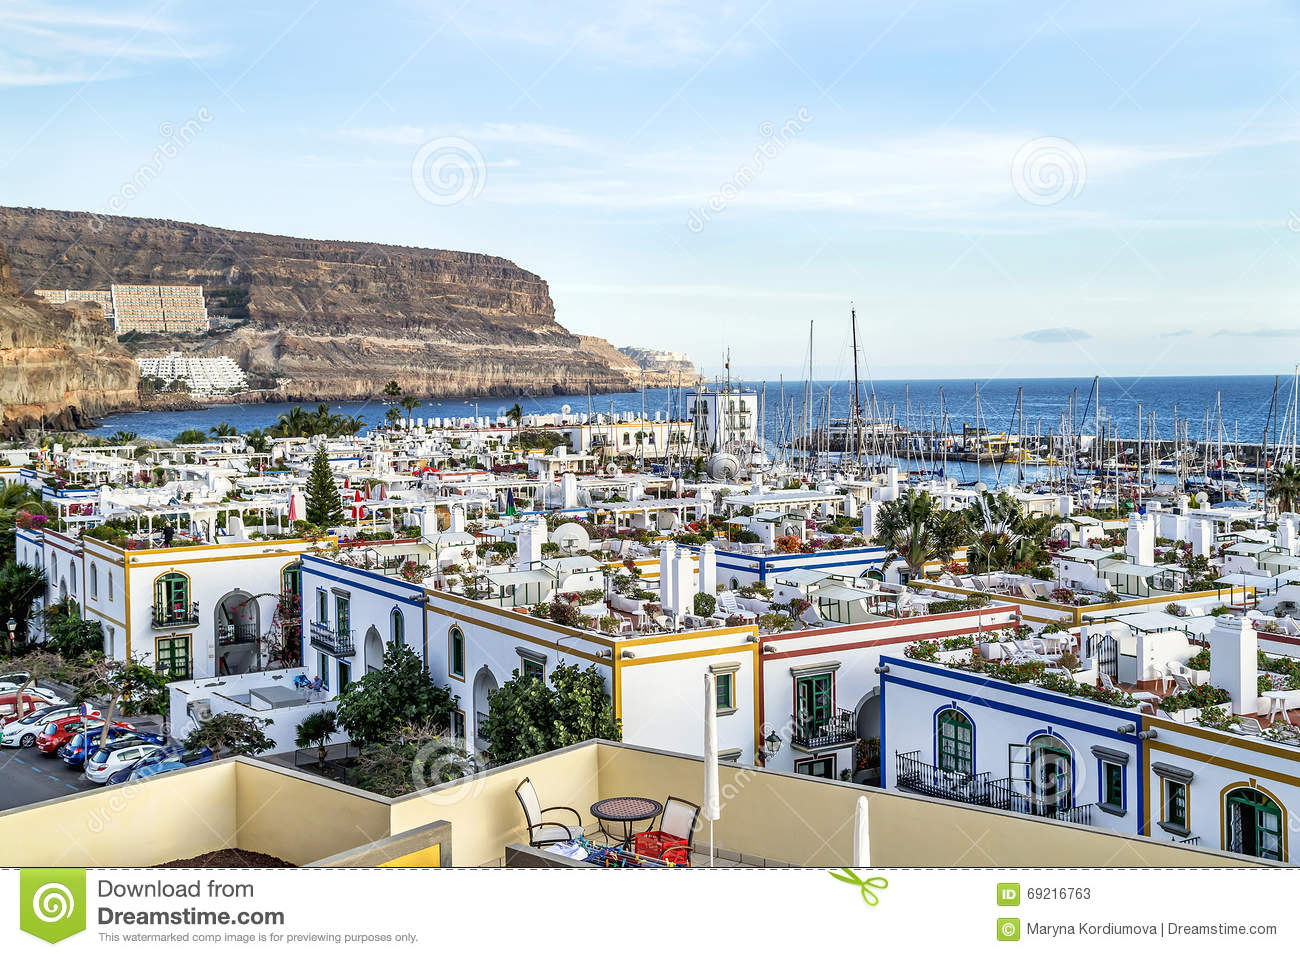 Puerto de mogan spain january 17 2016 aerial view of - Houses in gran canaria ...